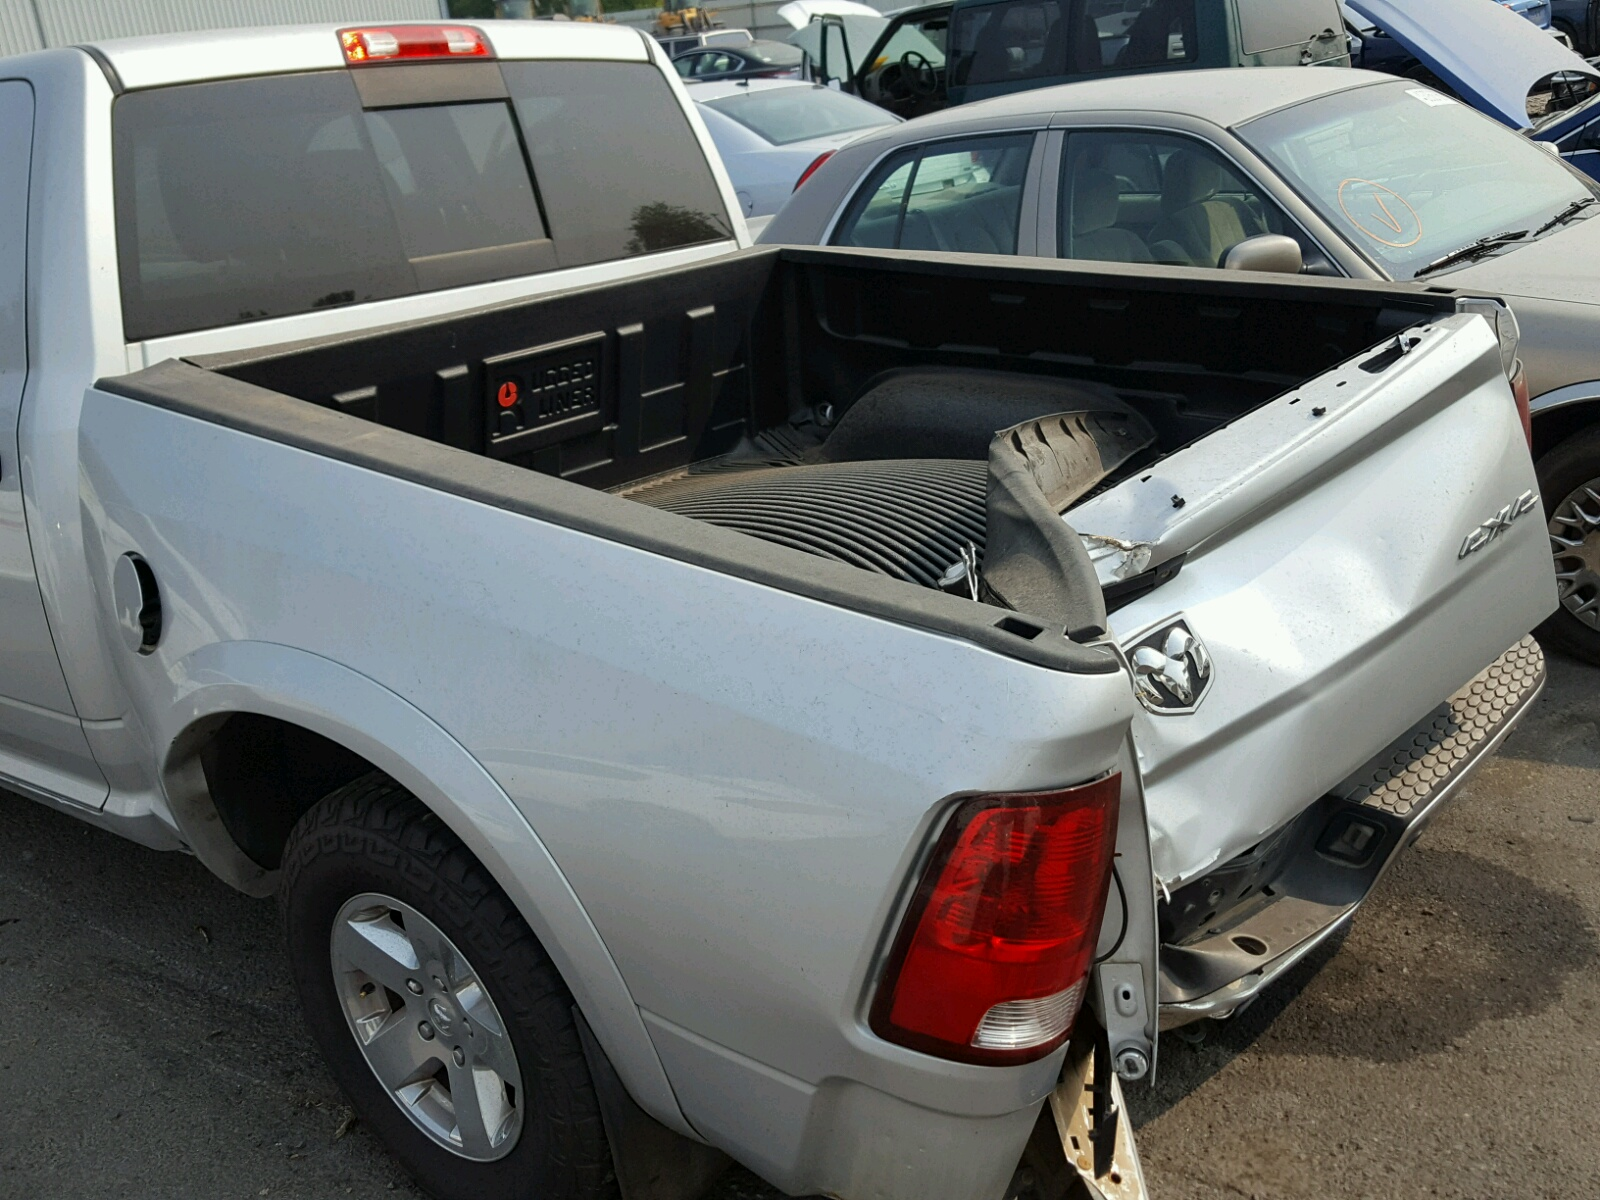 1c6rd7lt1cs327825 2012 Silver Dodge Ram 1500 S On Sale In Or Engine 57l View